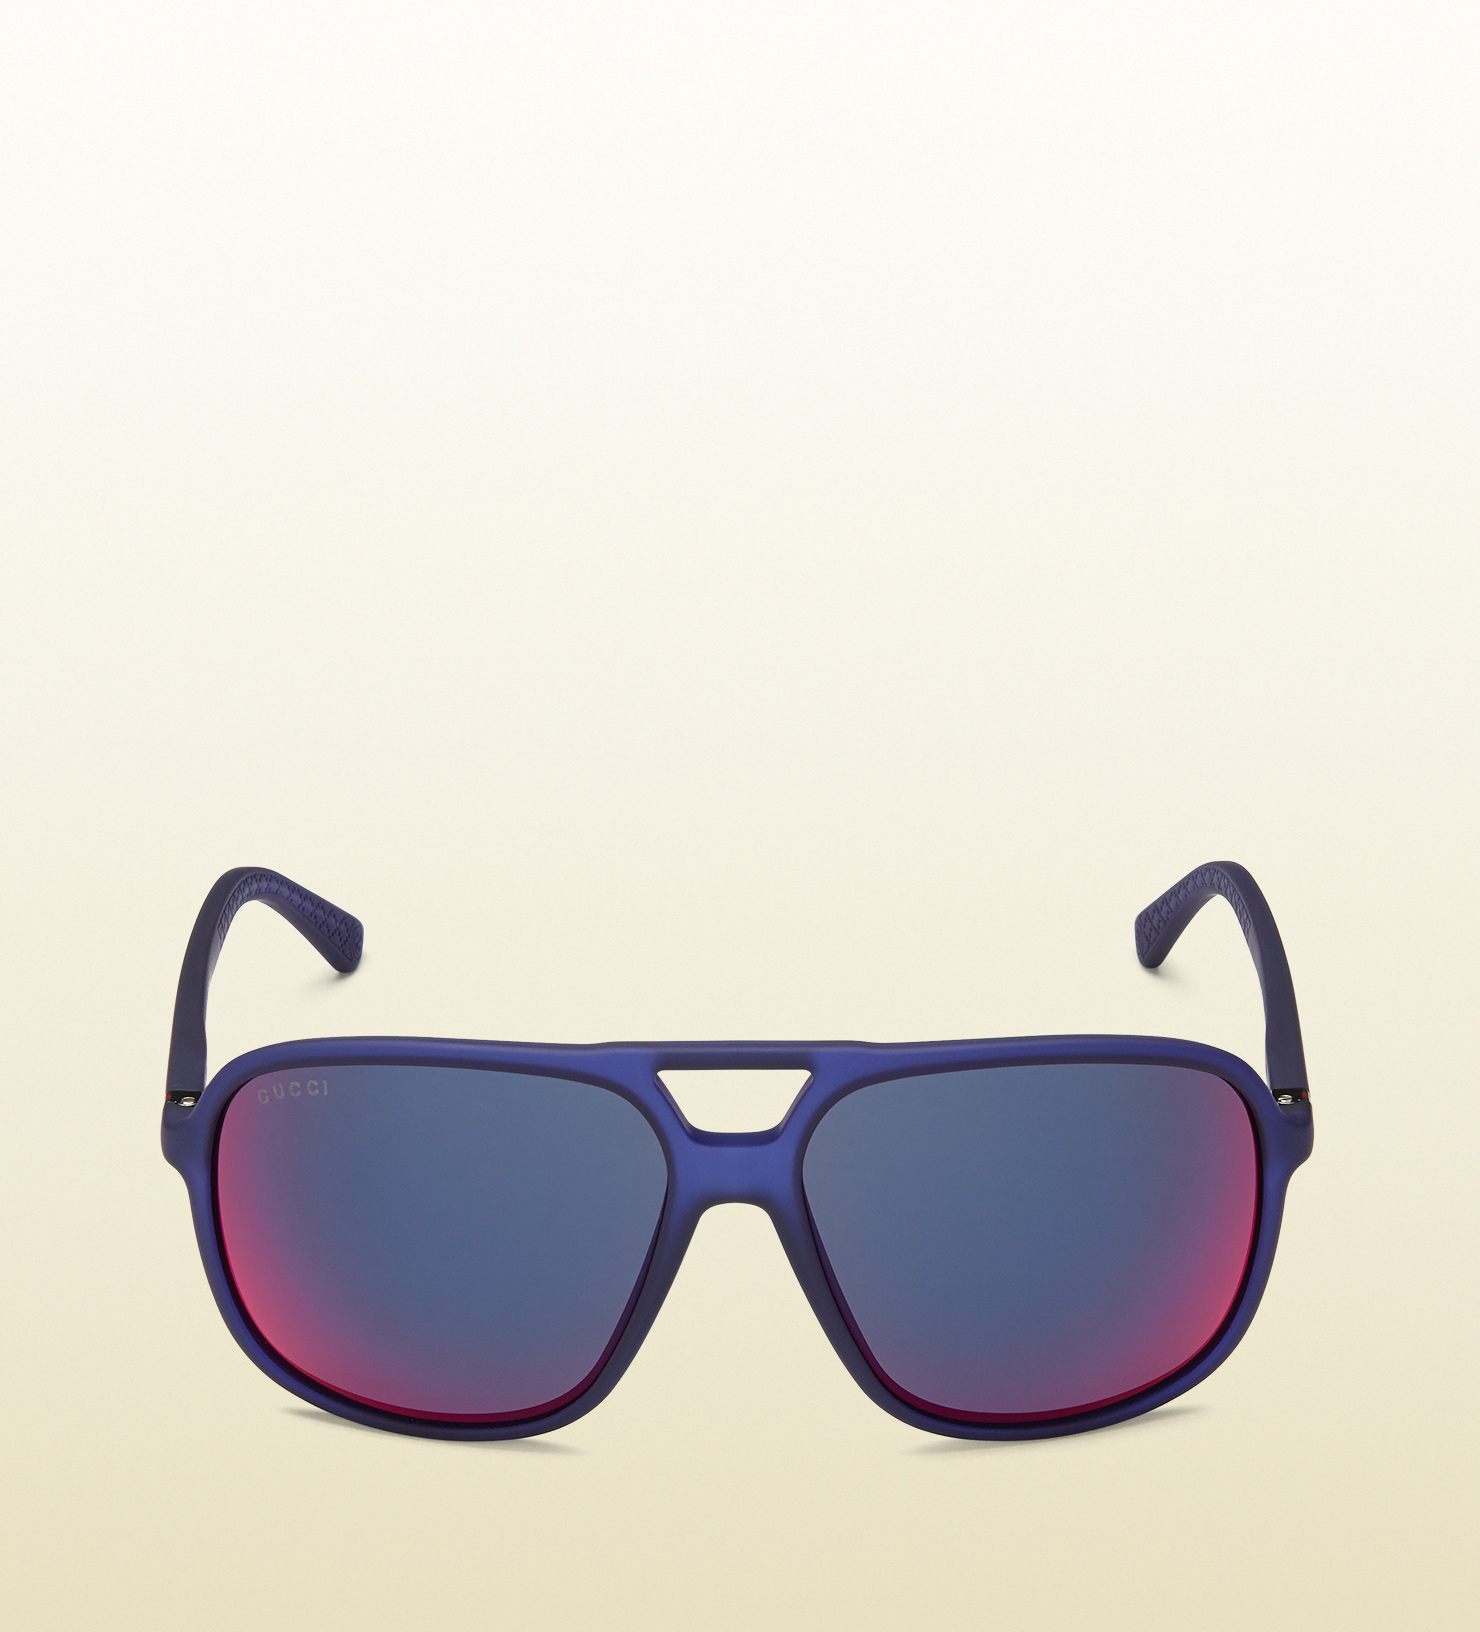 bc7432459a6a Lyst - Gucci Injected Aviator Sunglasses in Blue for Men